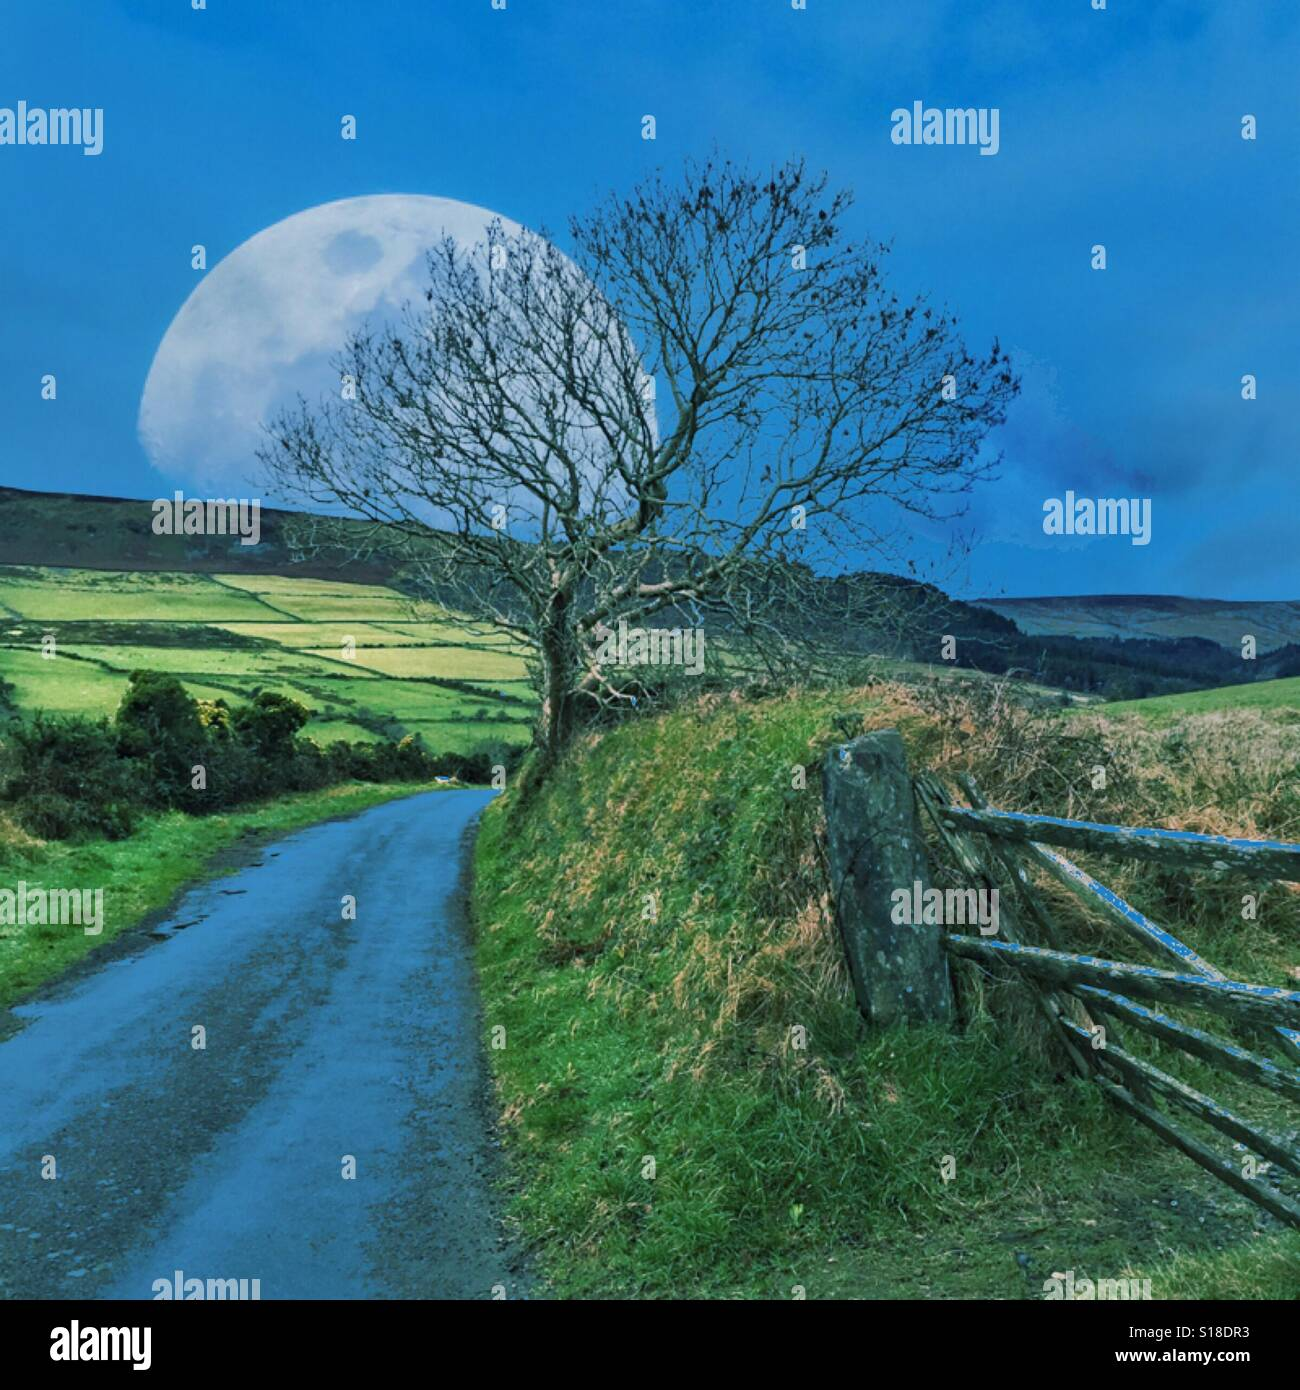 Super moon against rural countryside Stock Photo